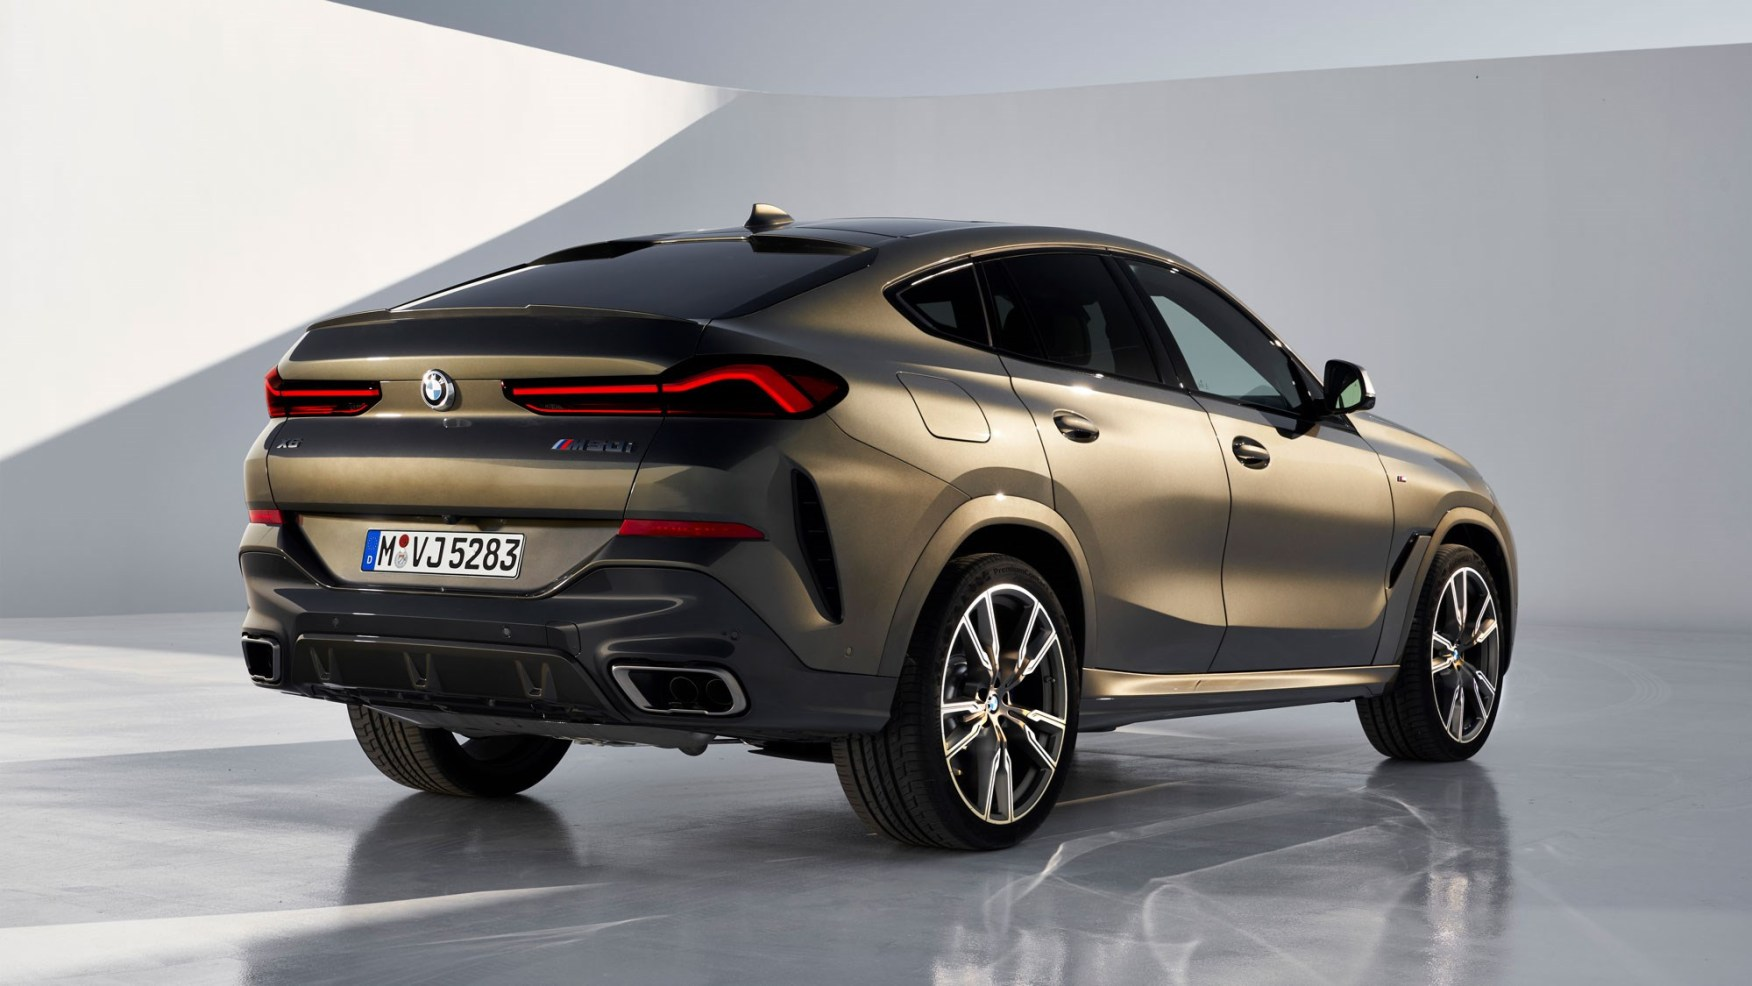 new bmw x6 suv what you need to know car magazine photo